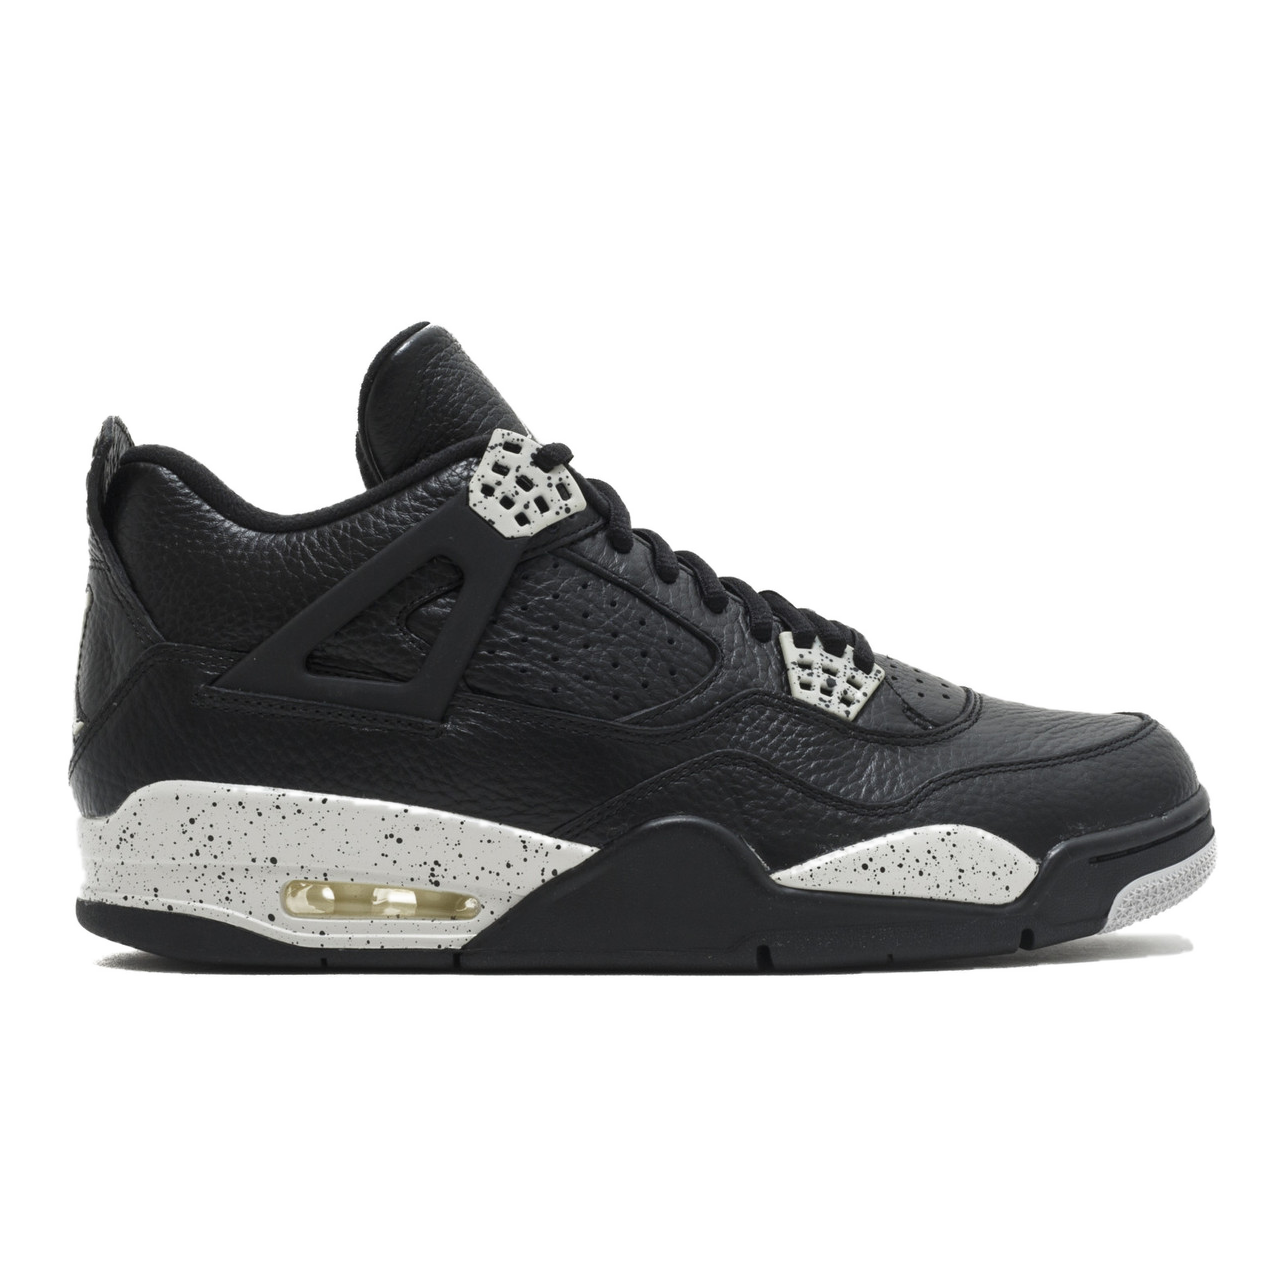 Air Jordan 4 Retro LS - Oreo (2015) - Used